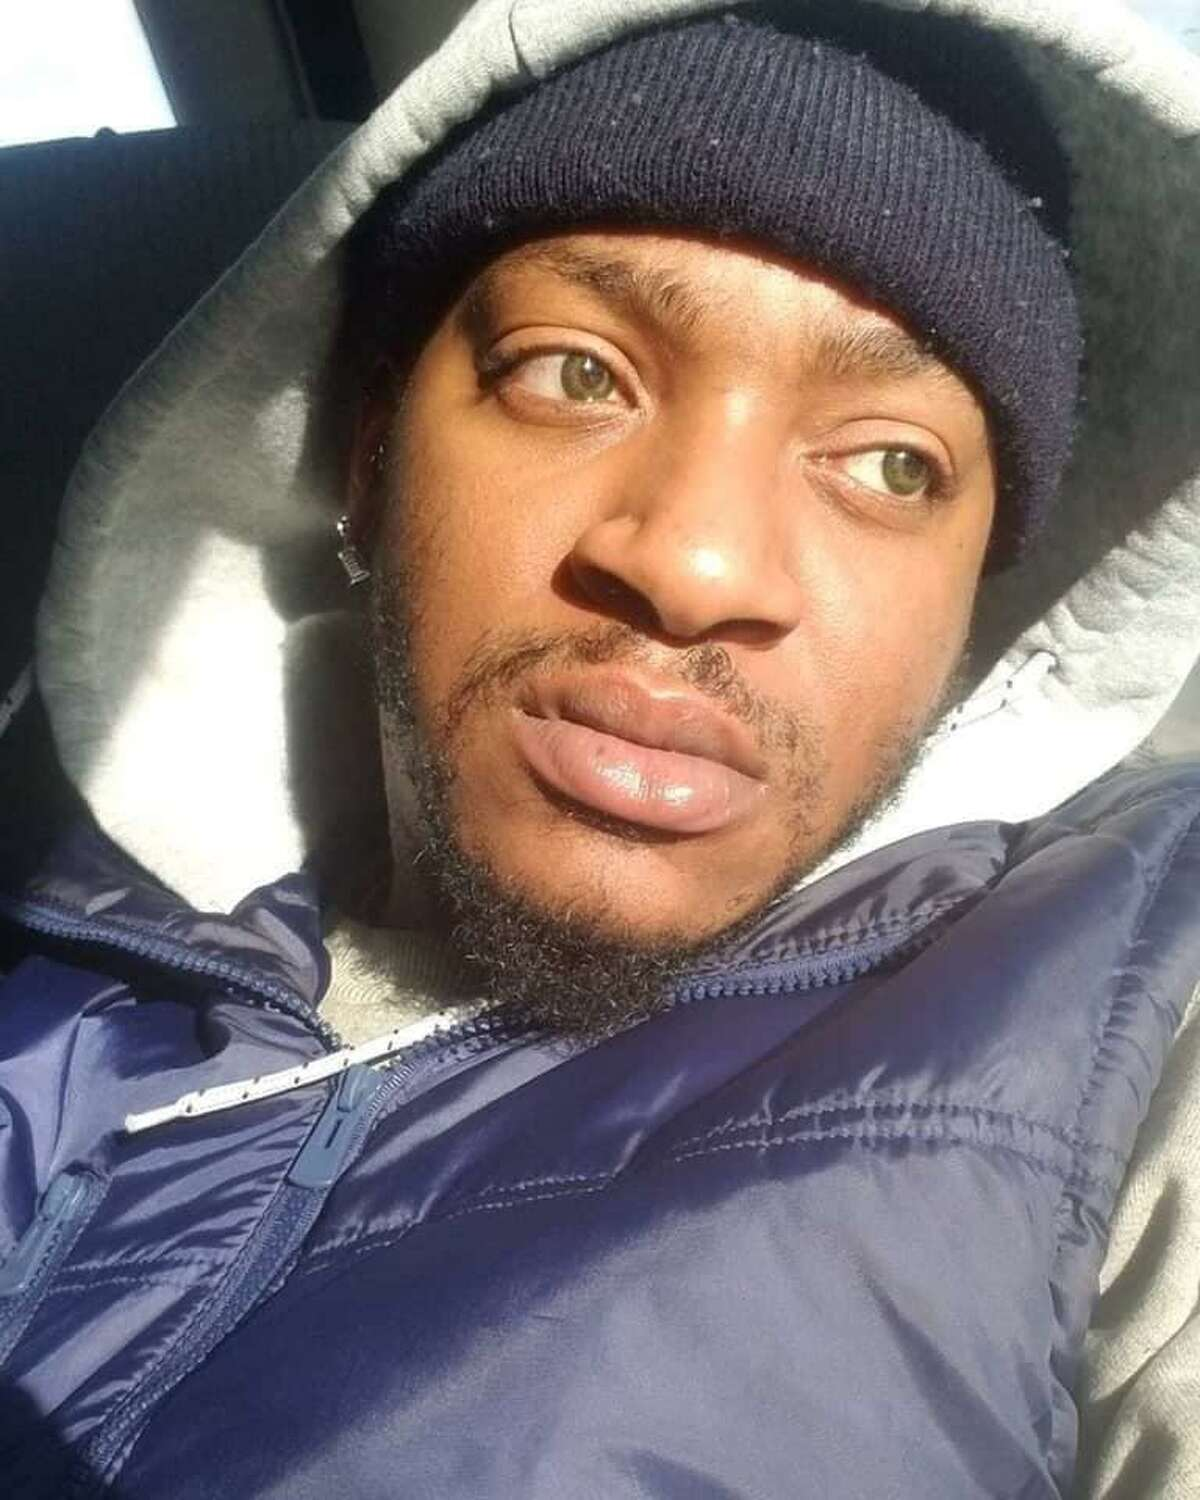 The family of a 29-year-old Stamford man last seen in Nashua, N.H., on Saturday night is asking the public's help to locate him. Mike McClain, who was born in raised in Stamford, graduated from Stamford High in 2008.